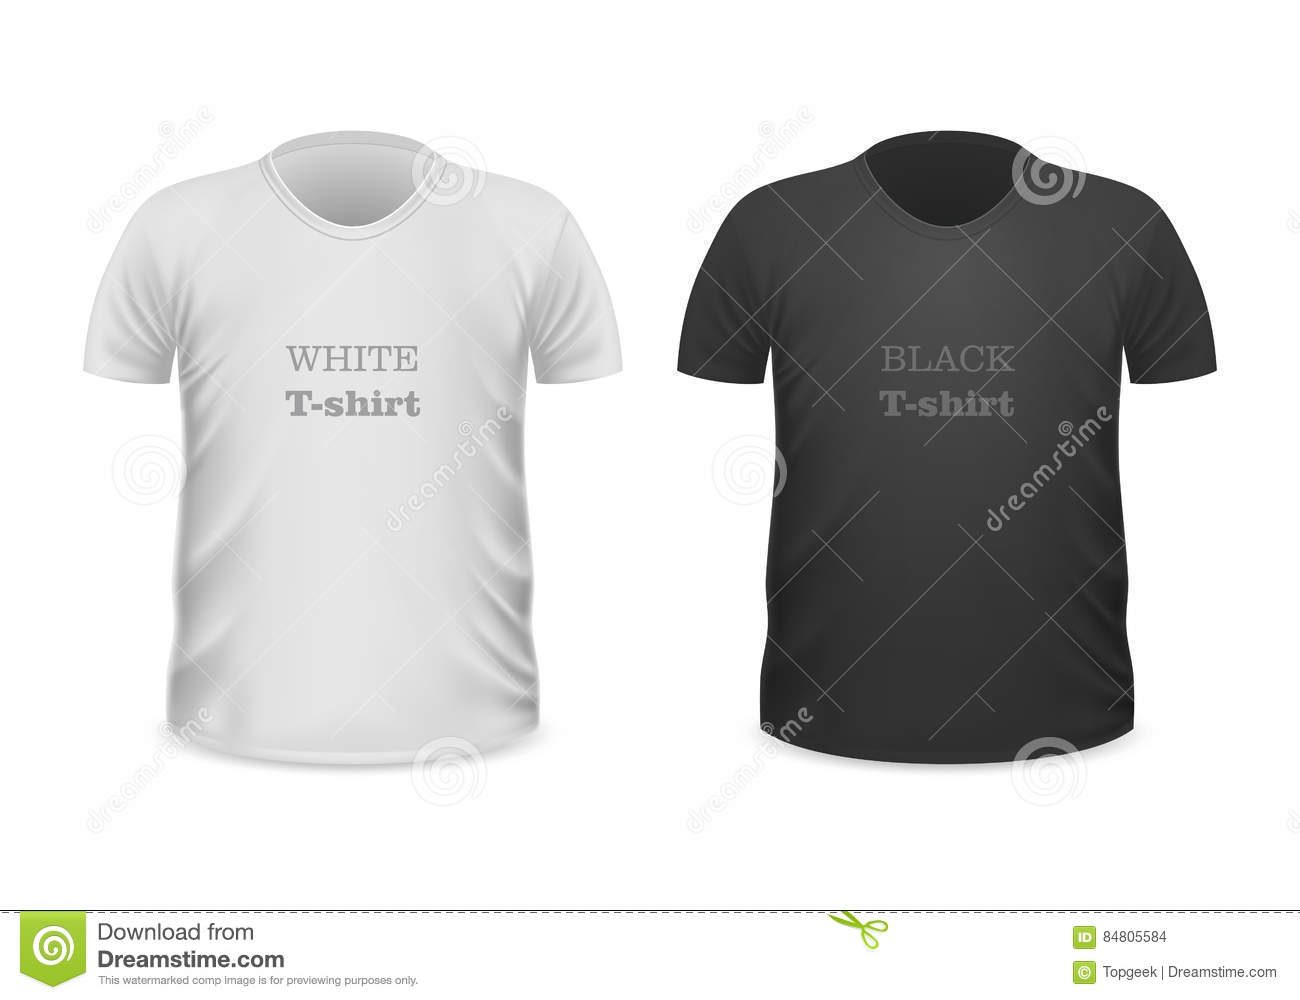 Black t shirt vector - Front View White And Black T Shirts Stock Vector